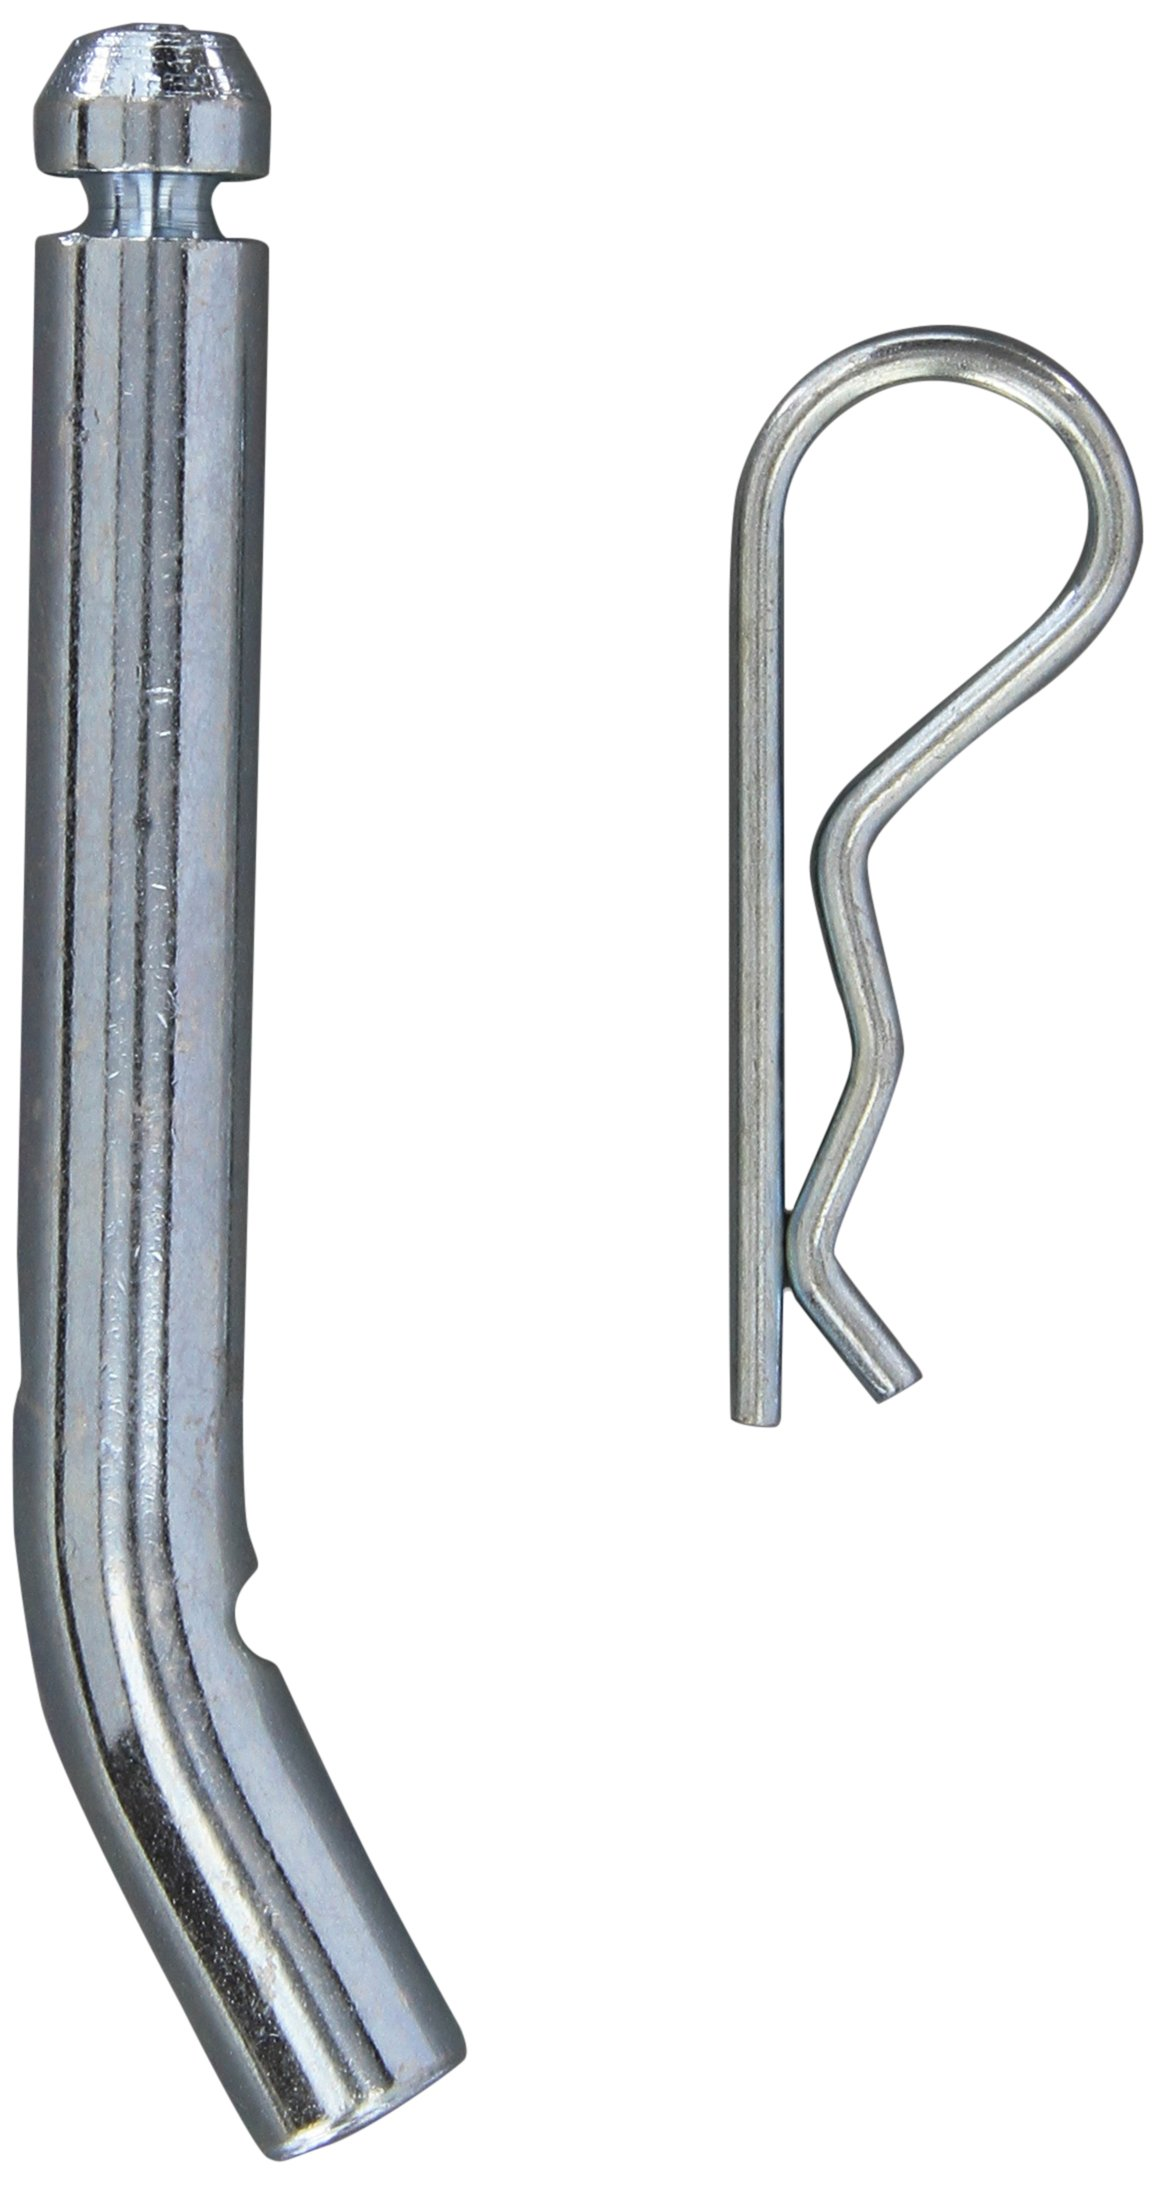 WARN 63063 Hitch Pin Kit by WARN